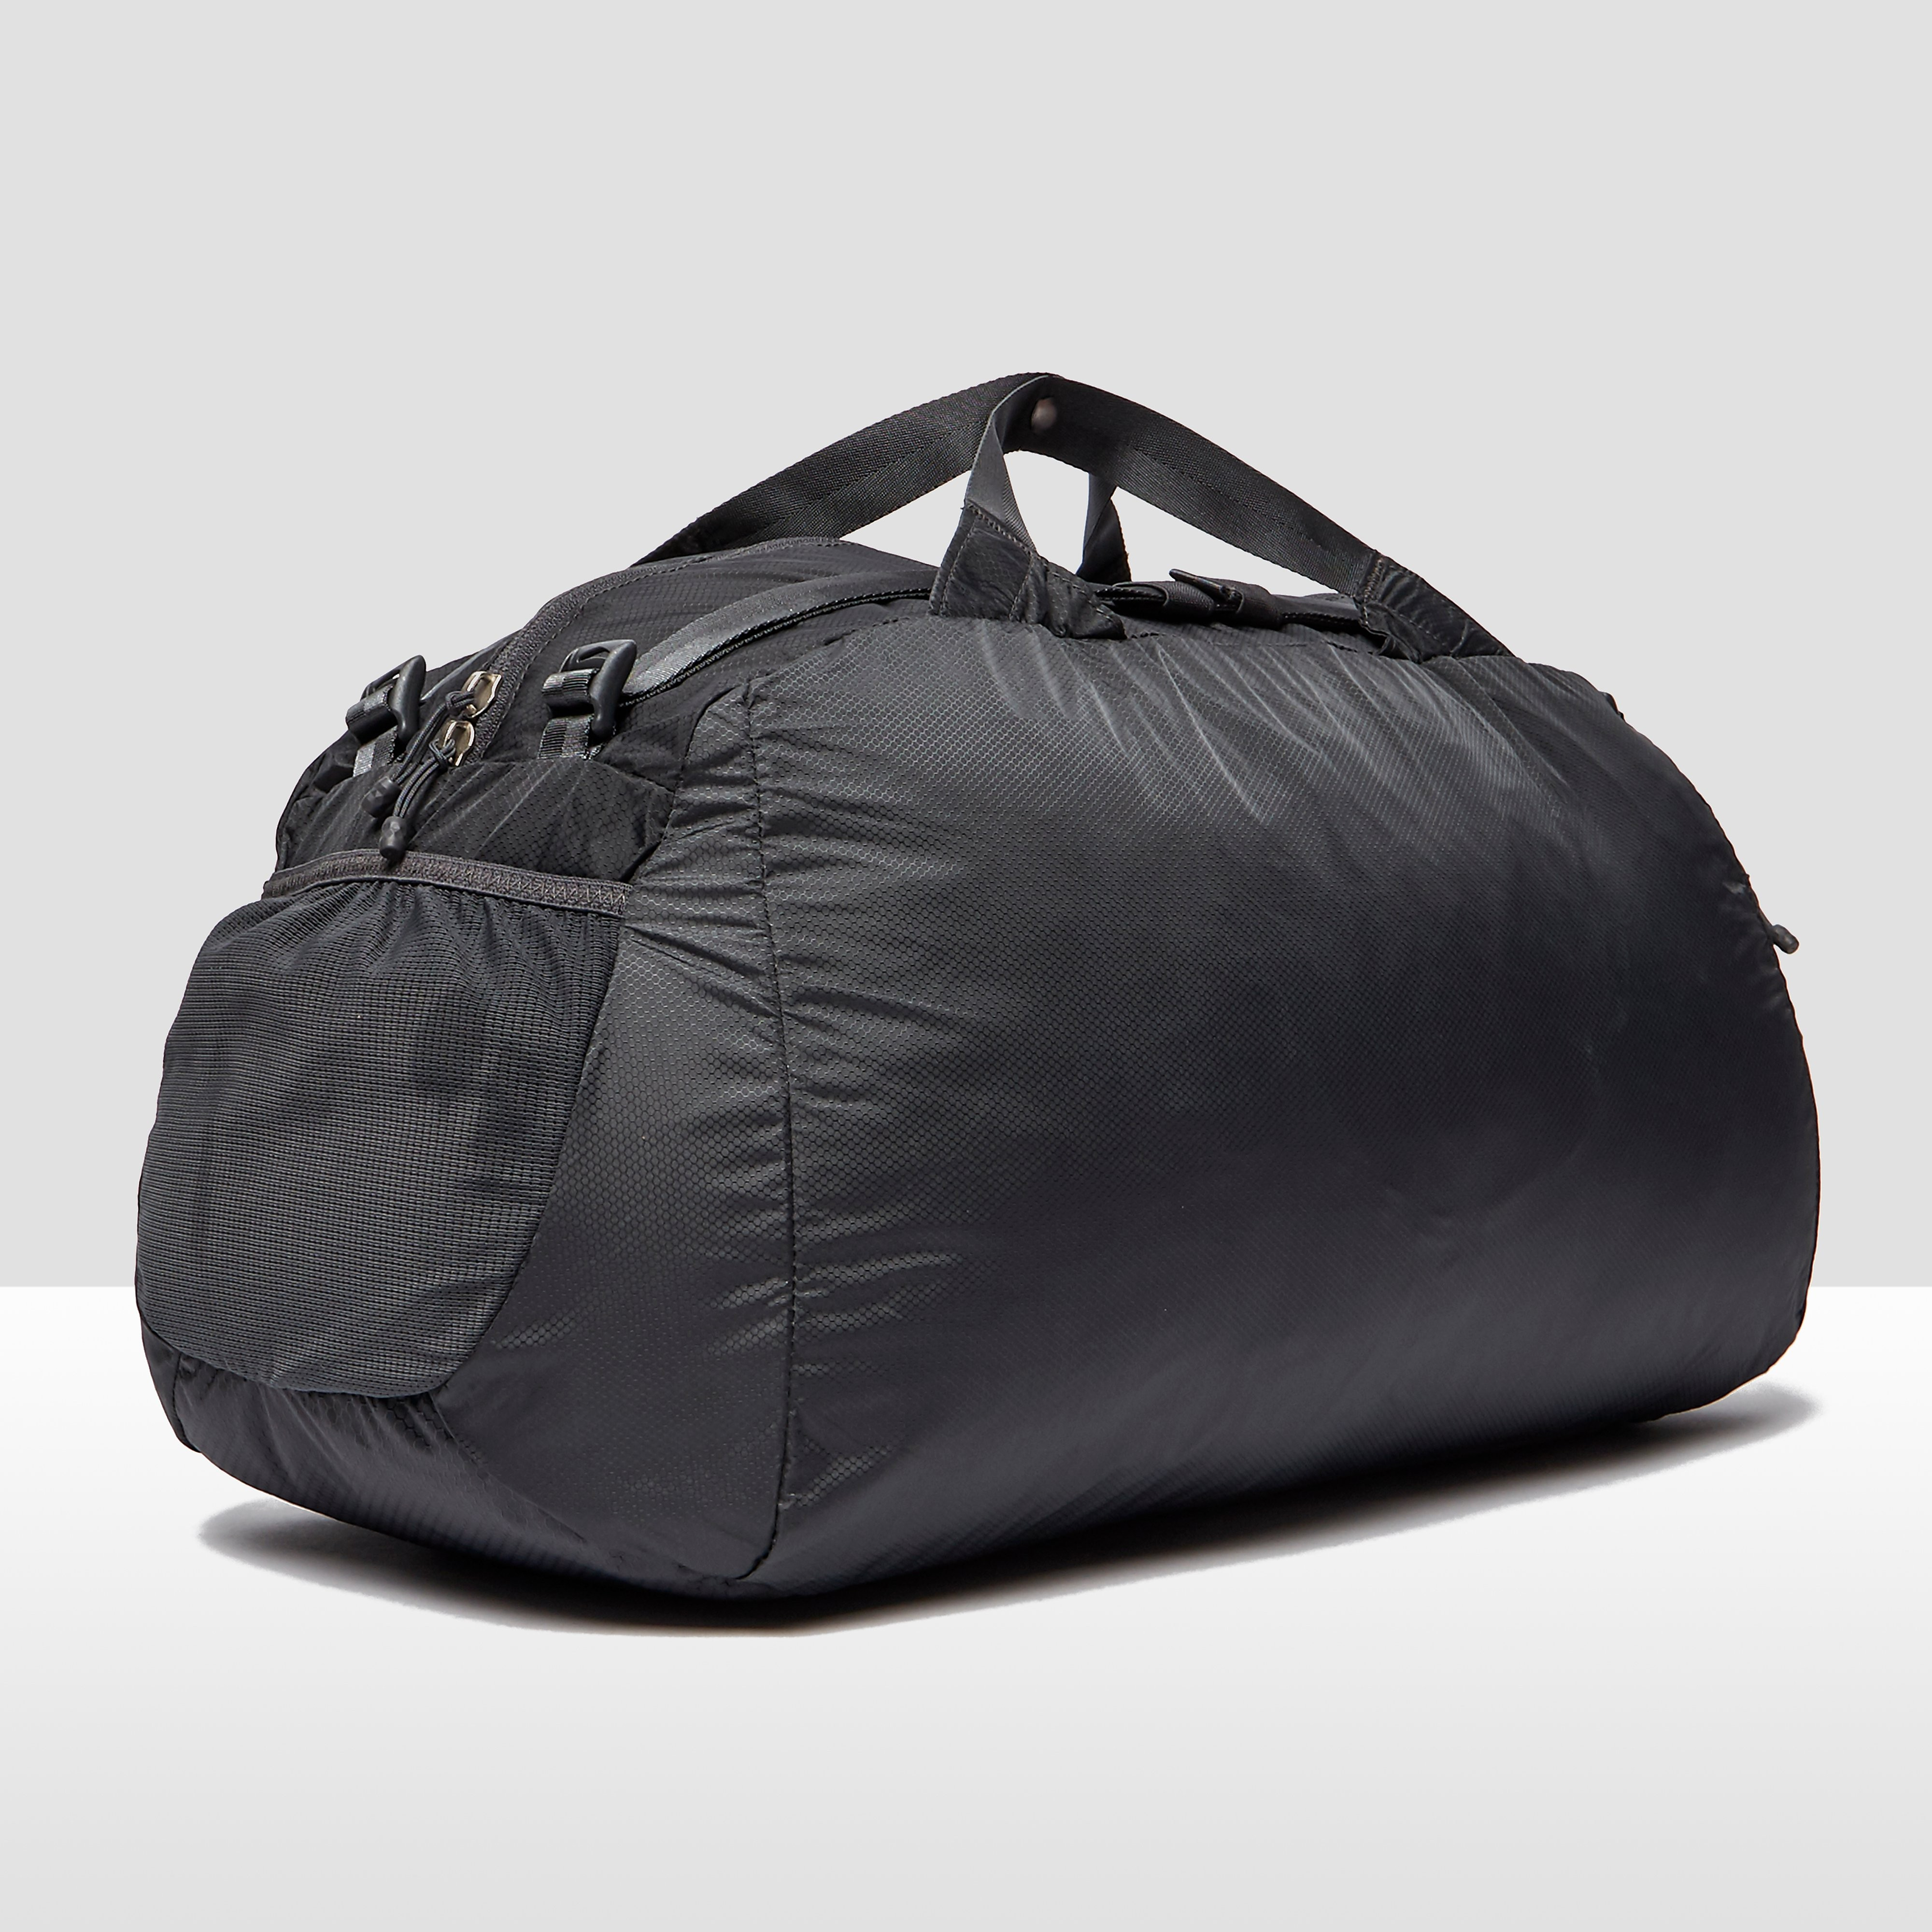 The North Face Flyweight Duffel Bag